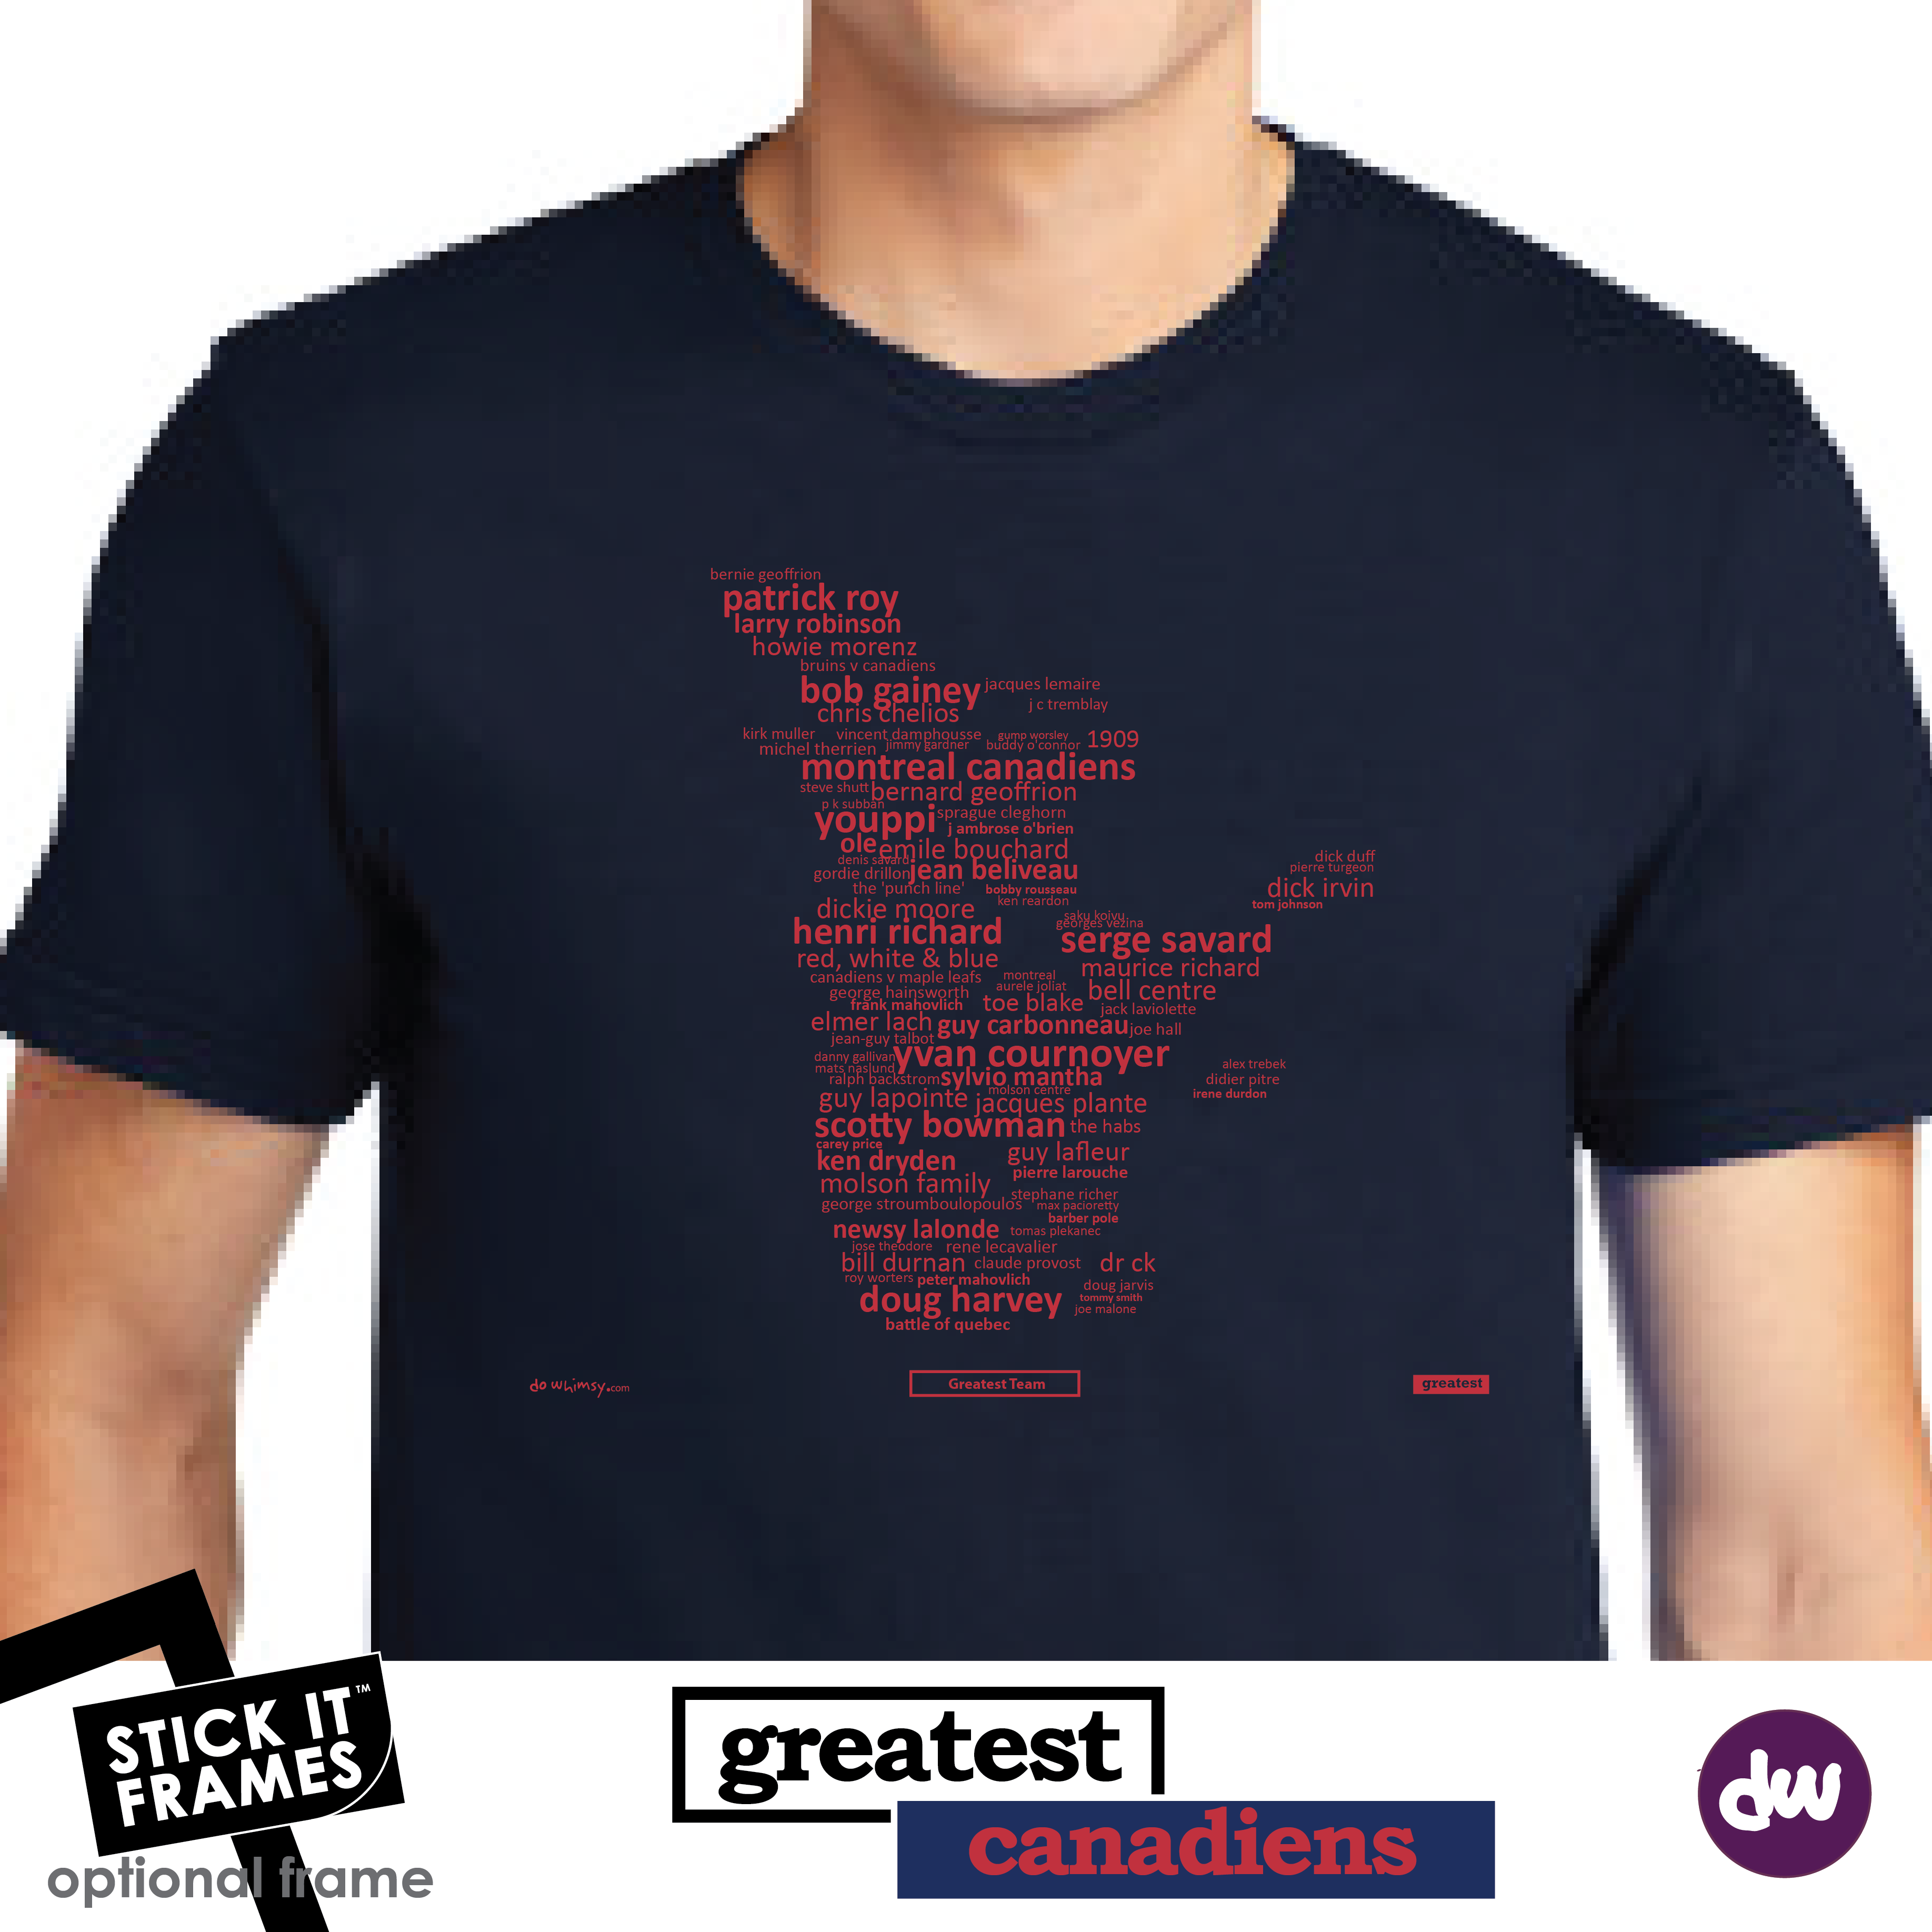 Greatest Montreal (Canadiens) - All Products (Shirt, Art, Frames (R))